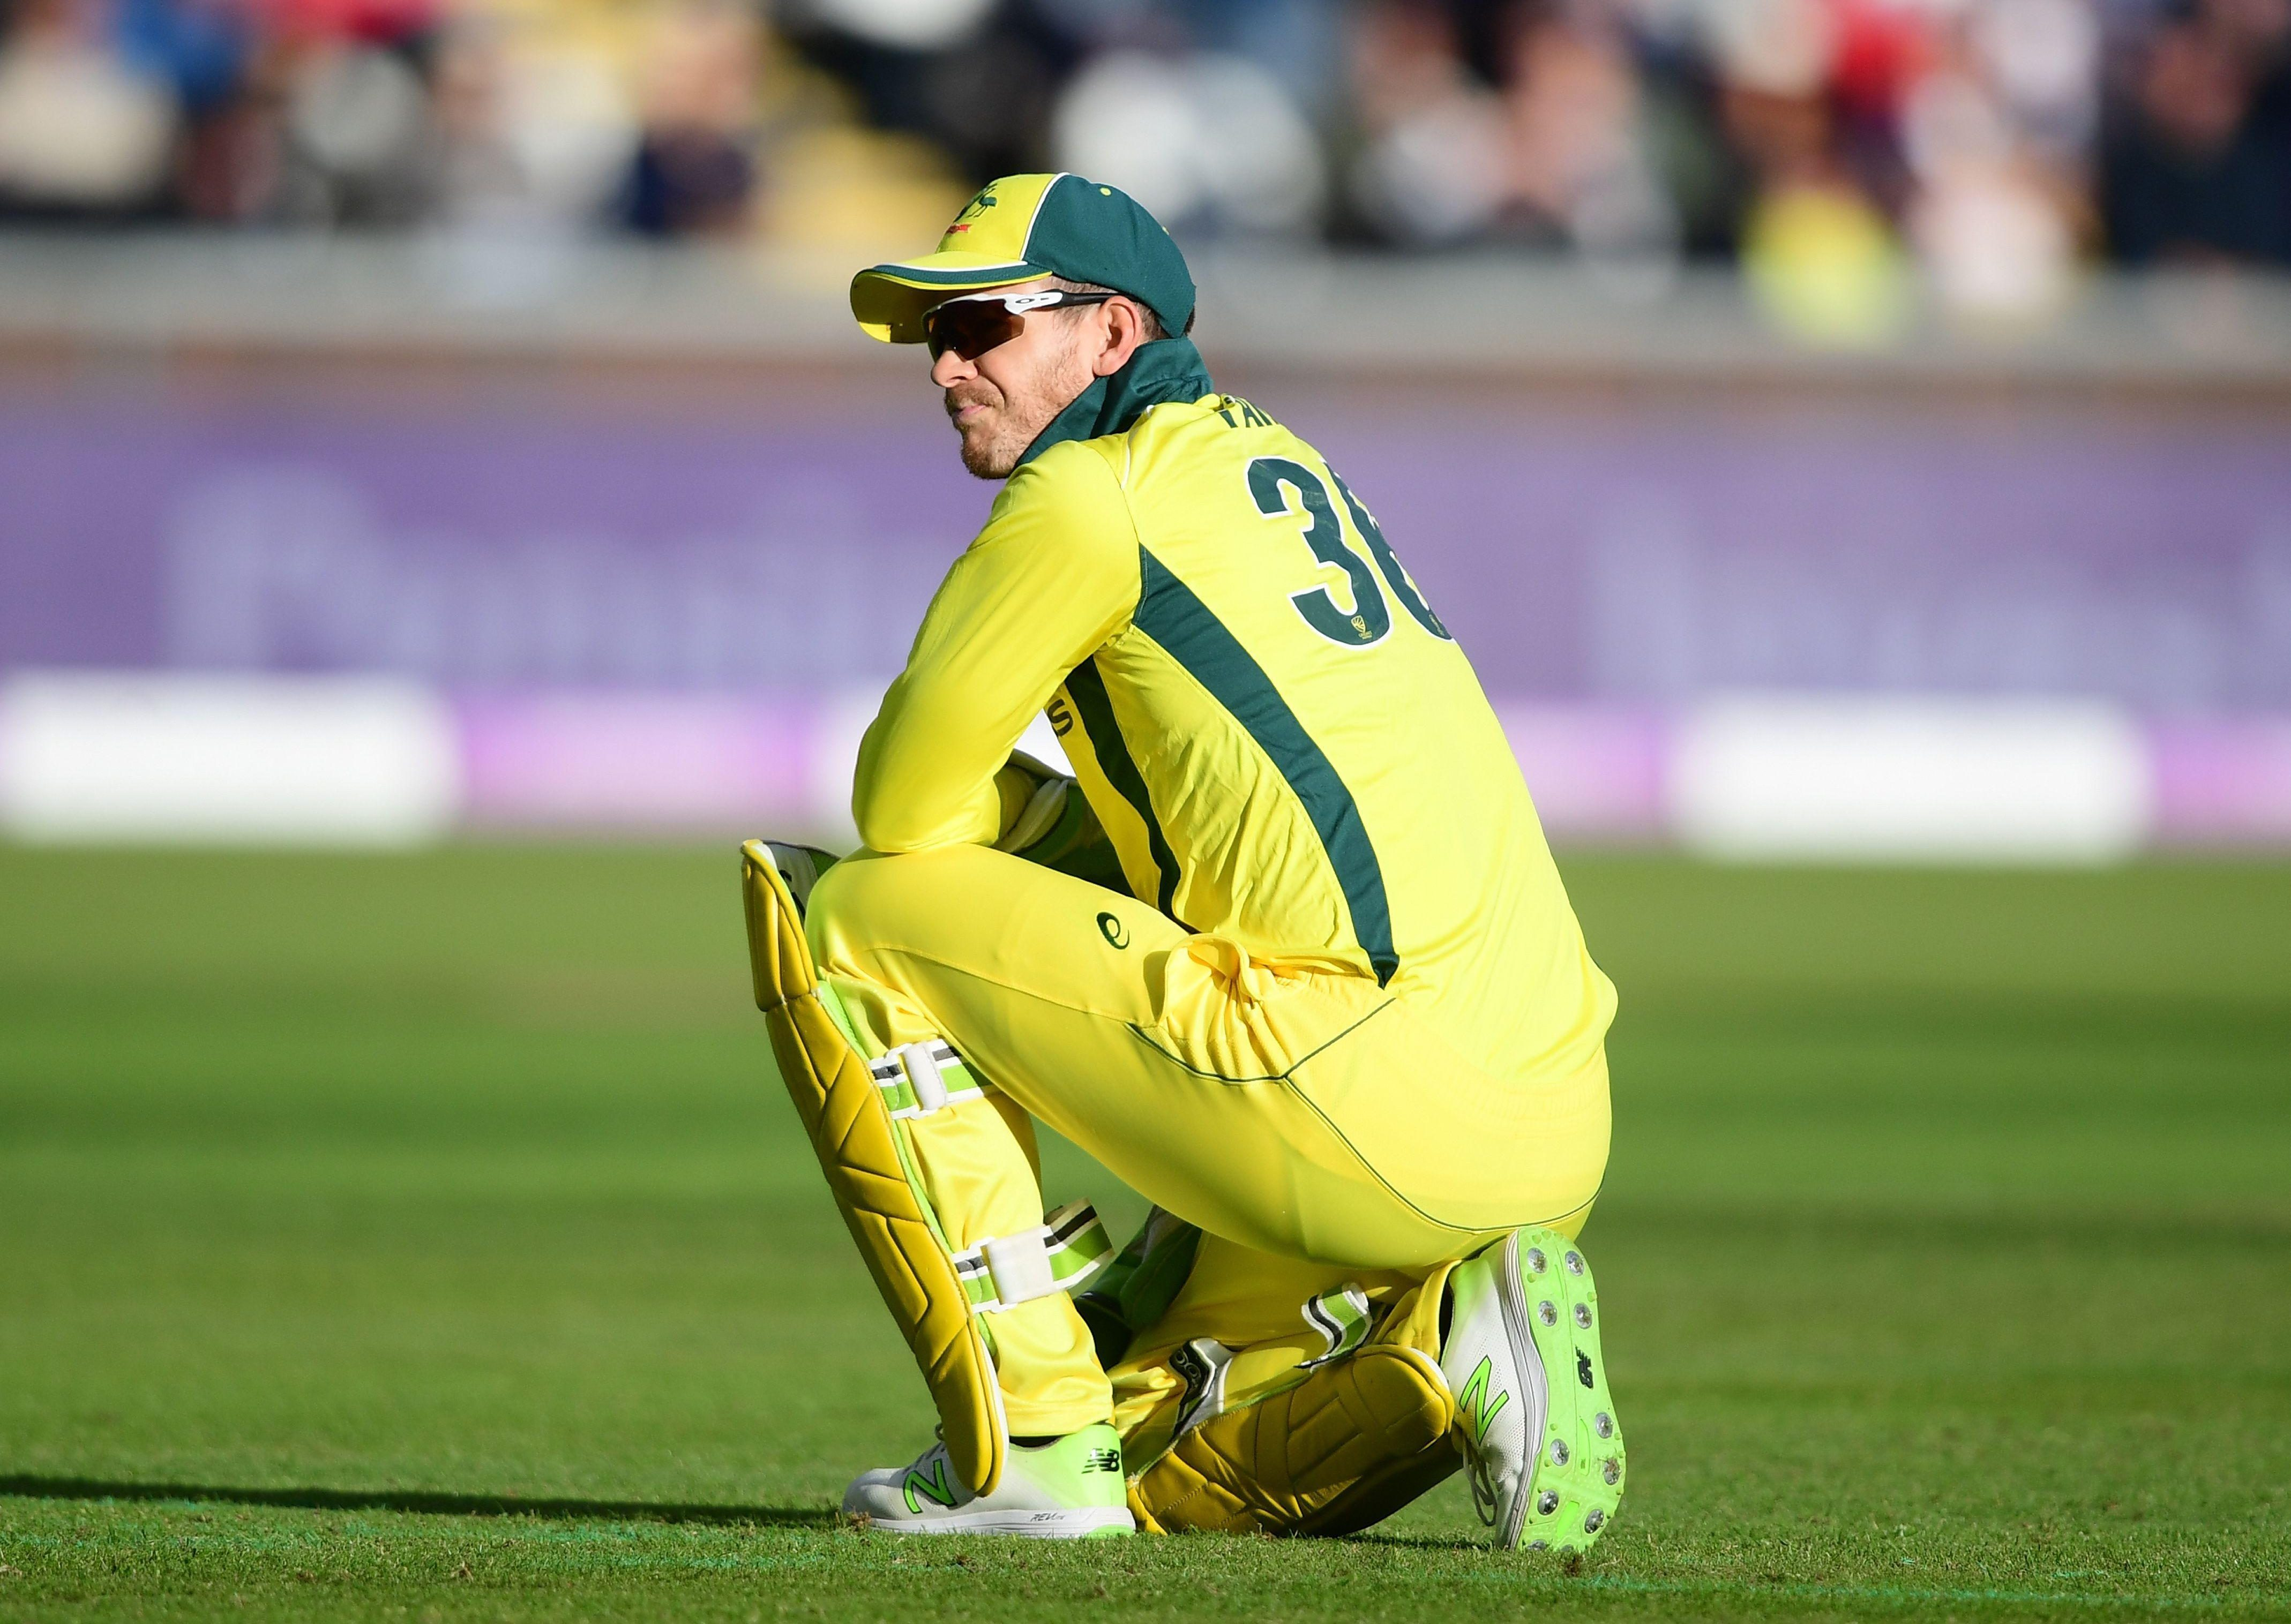 Tim Paine's side are on the brink of a humiliating 5-0 drubbing